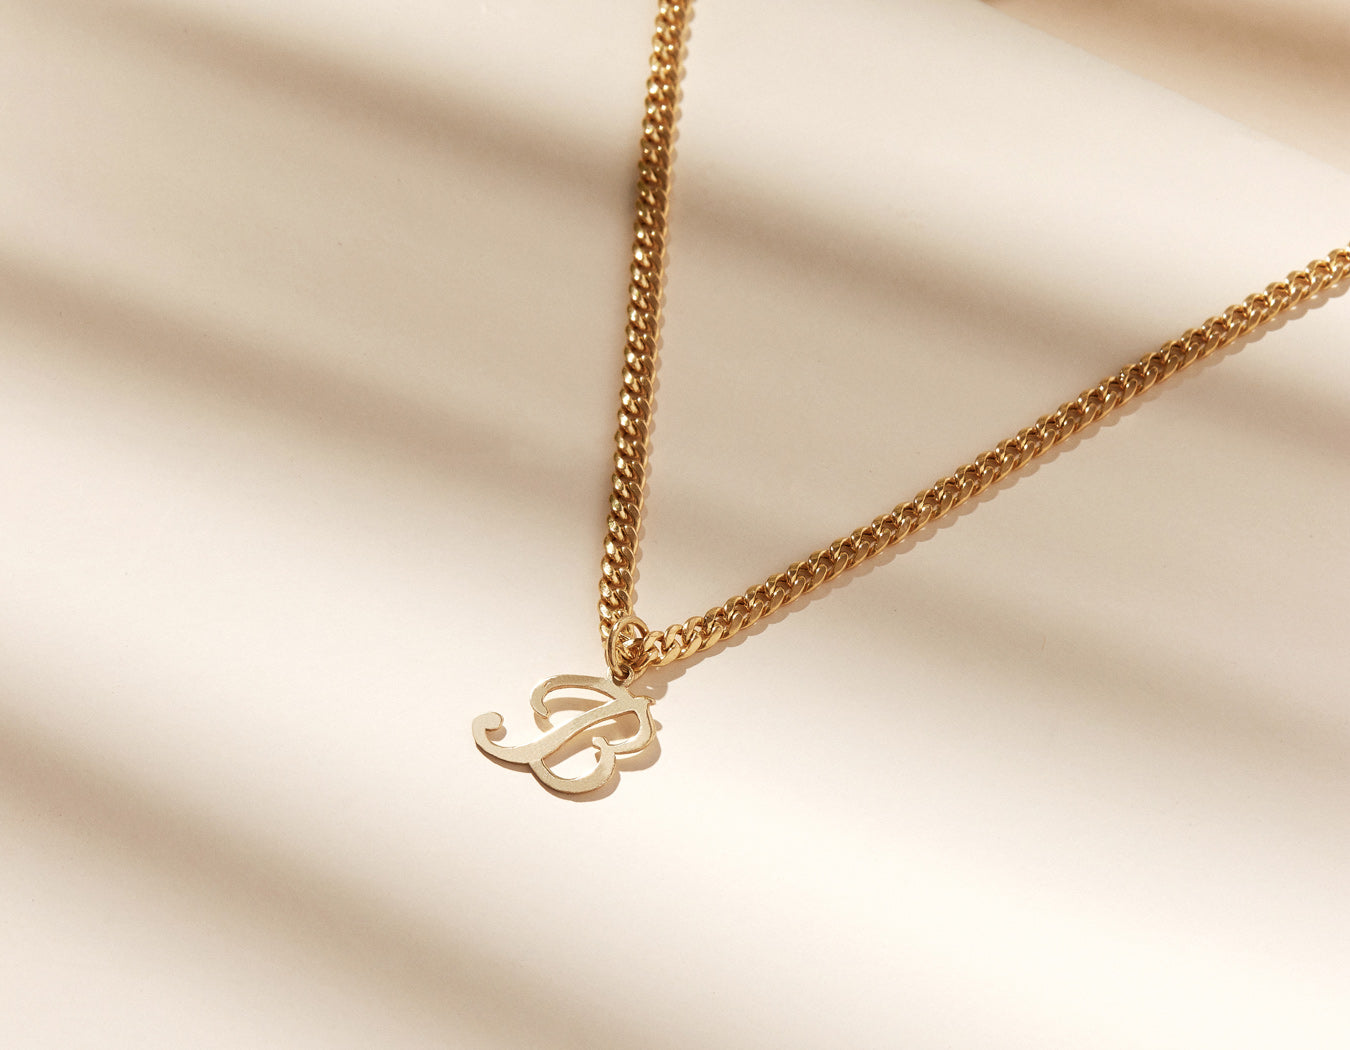 fddd4f28b6d2 vrai & Oro 14K solid Yellow Gold Small classic Letter Pendant Necklace on  Cuban Link Chain